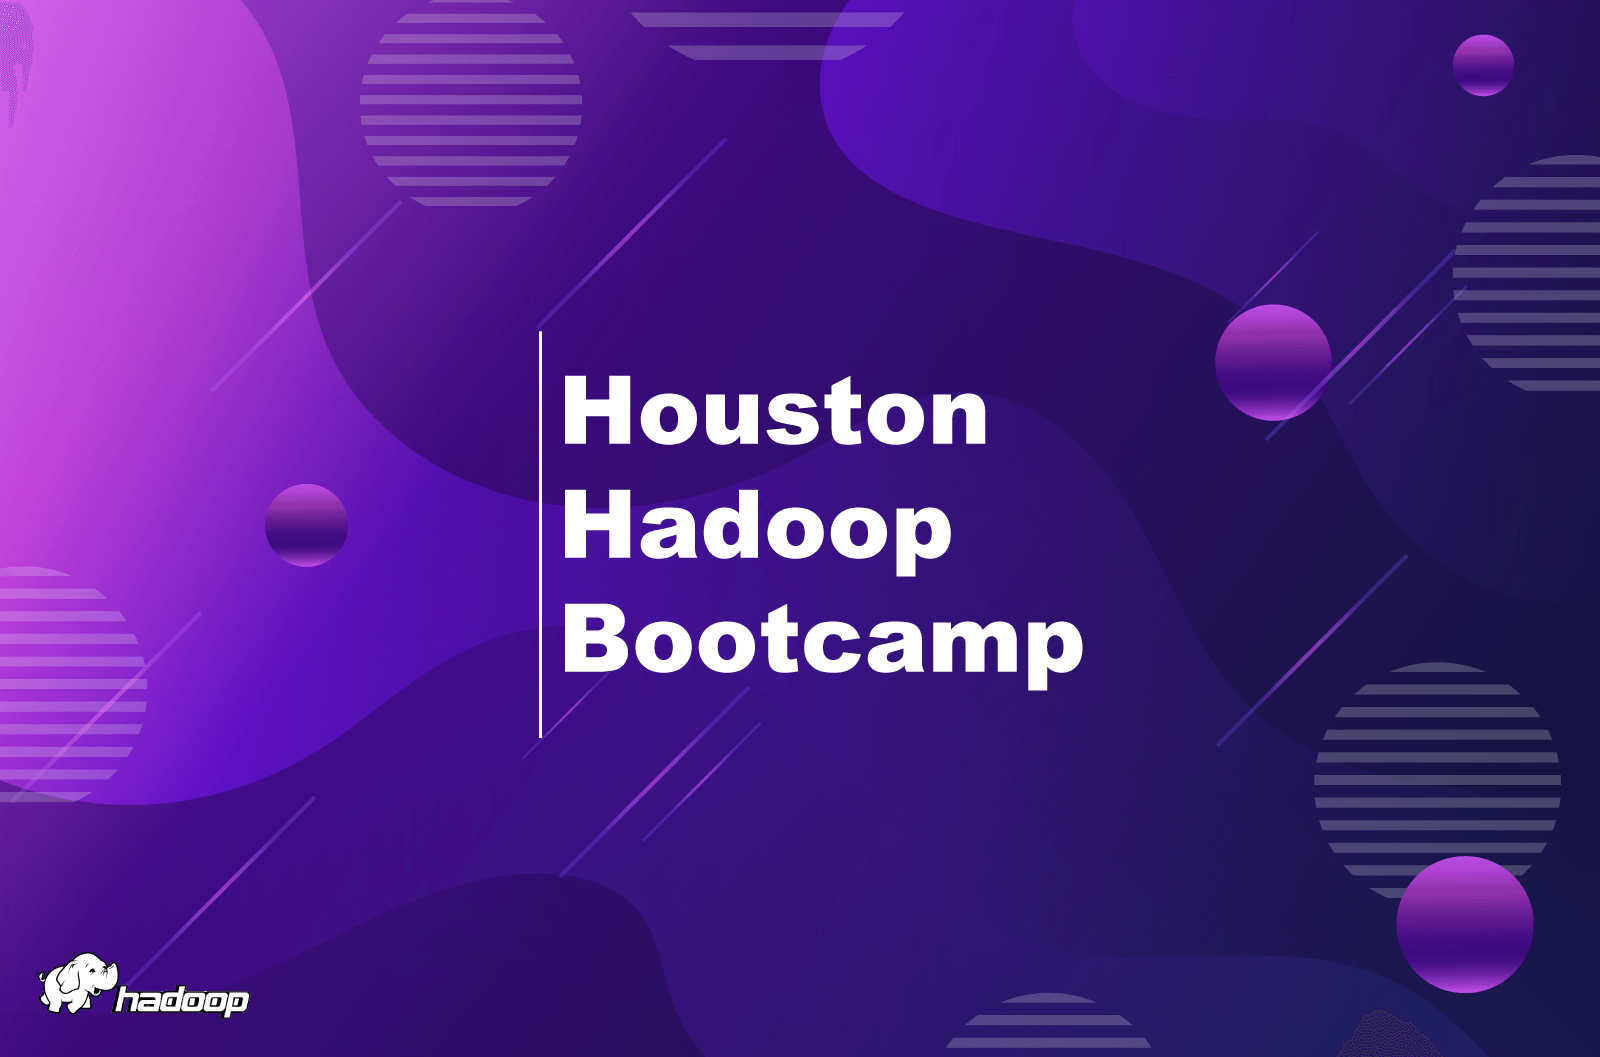 Houston Hadoop Bootcamp was a real success